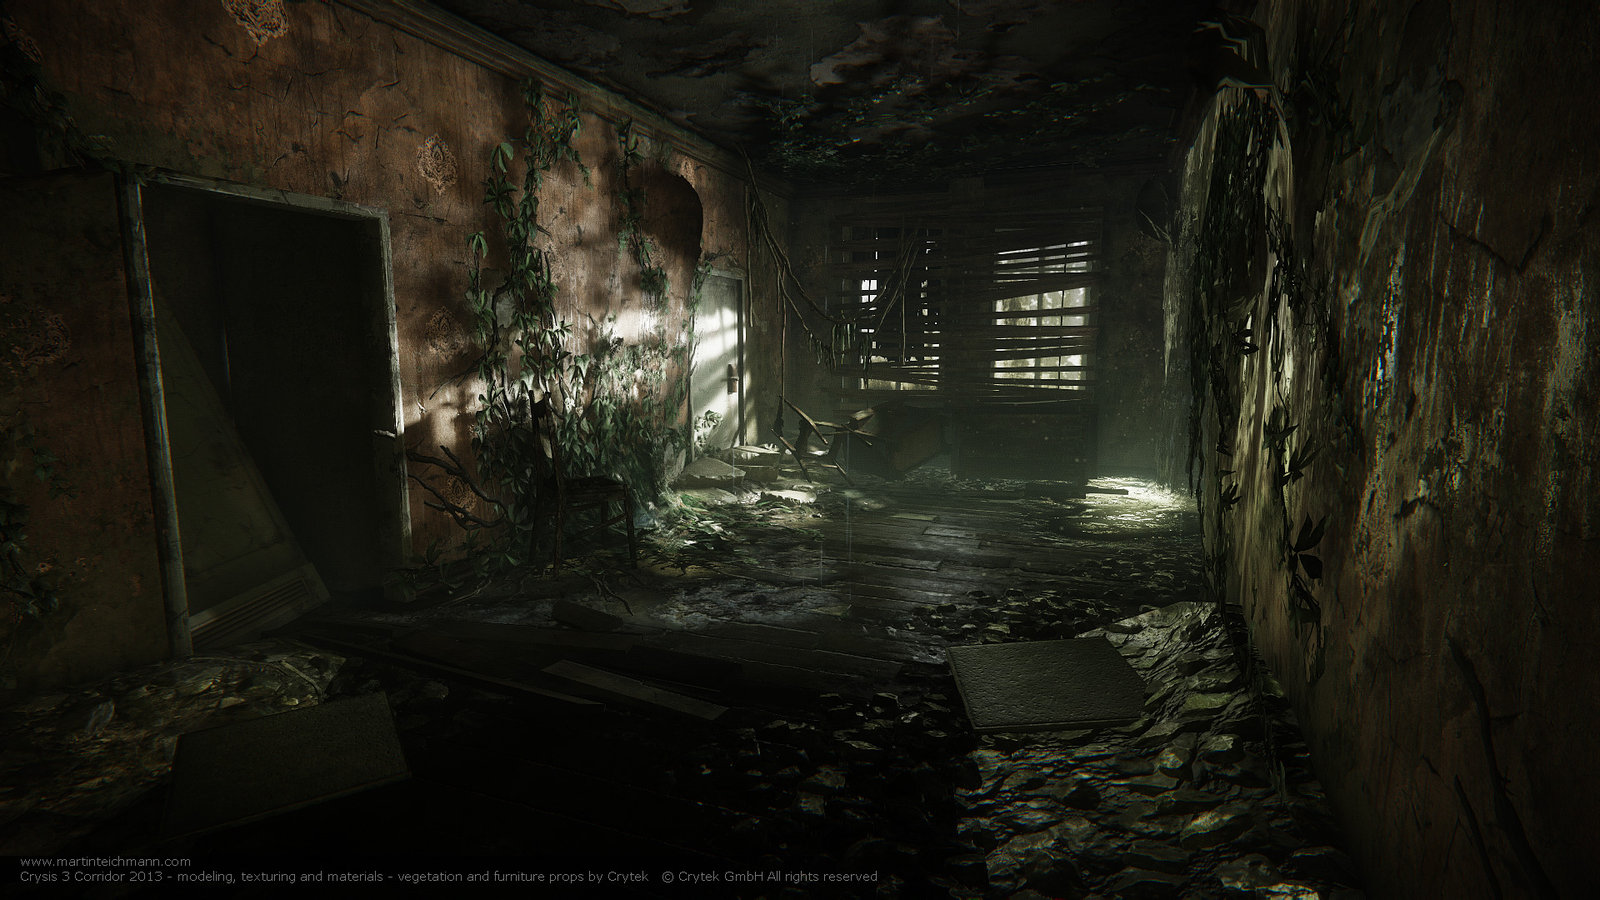 Crysis 3 Corridor - Root of All Evil